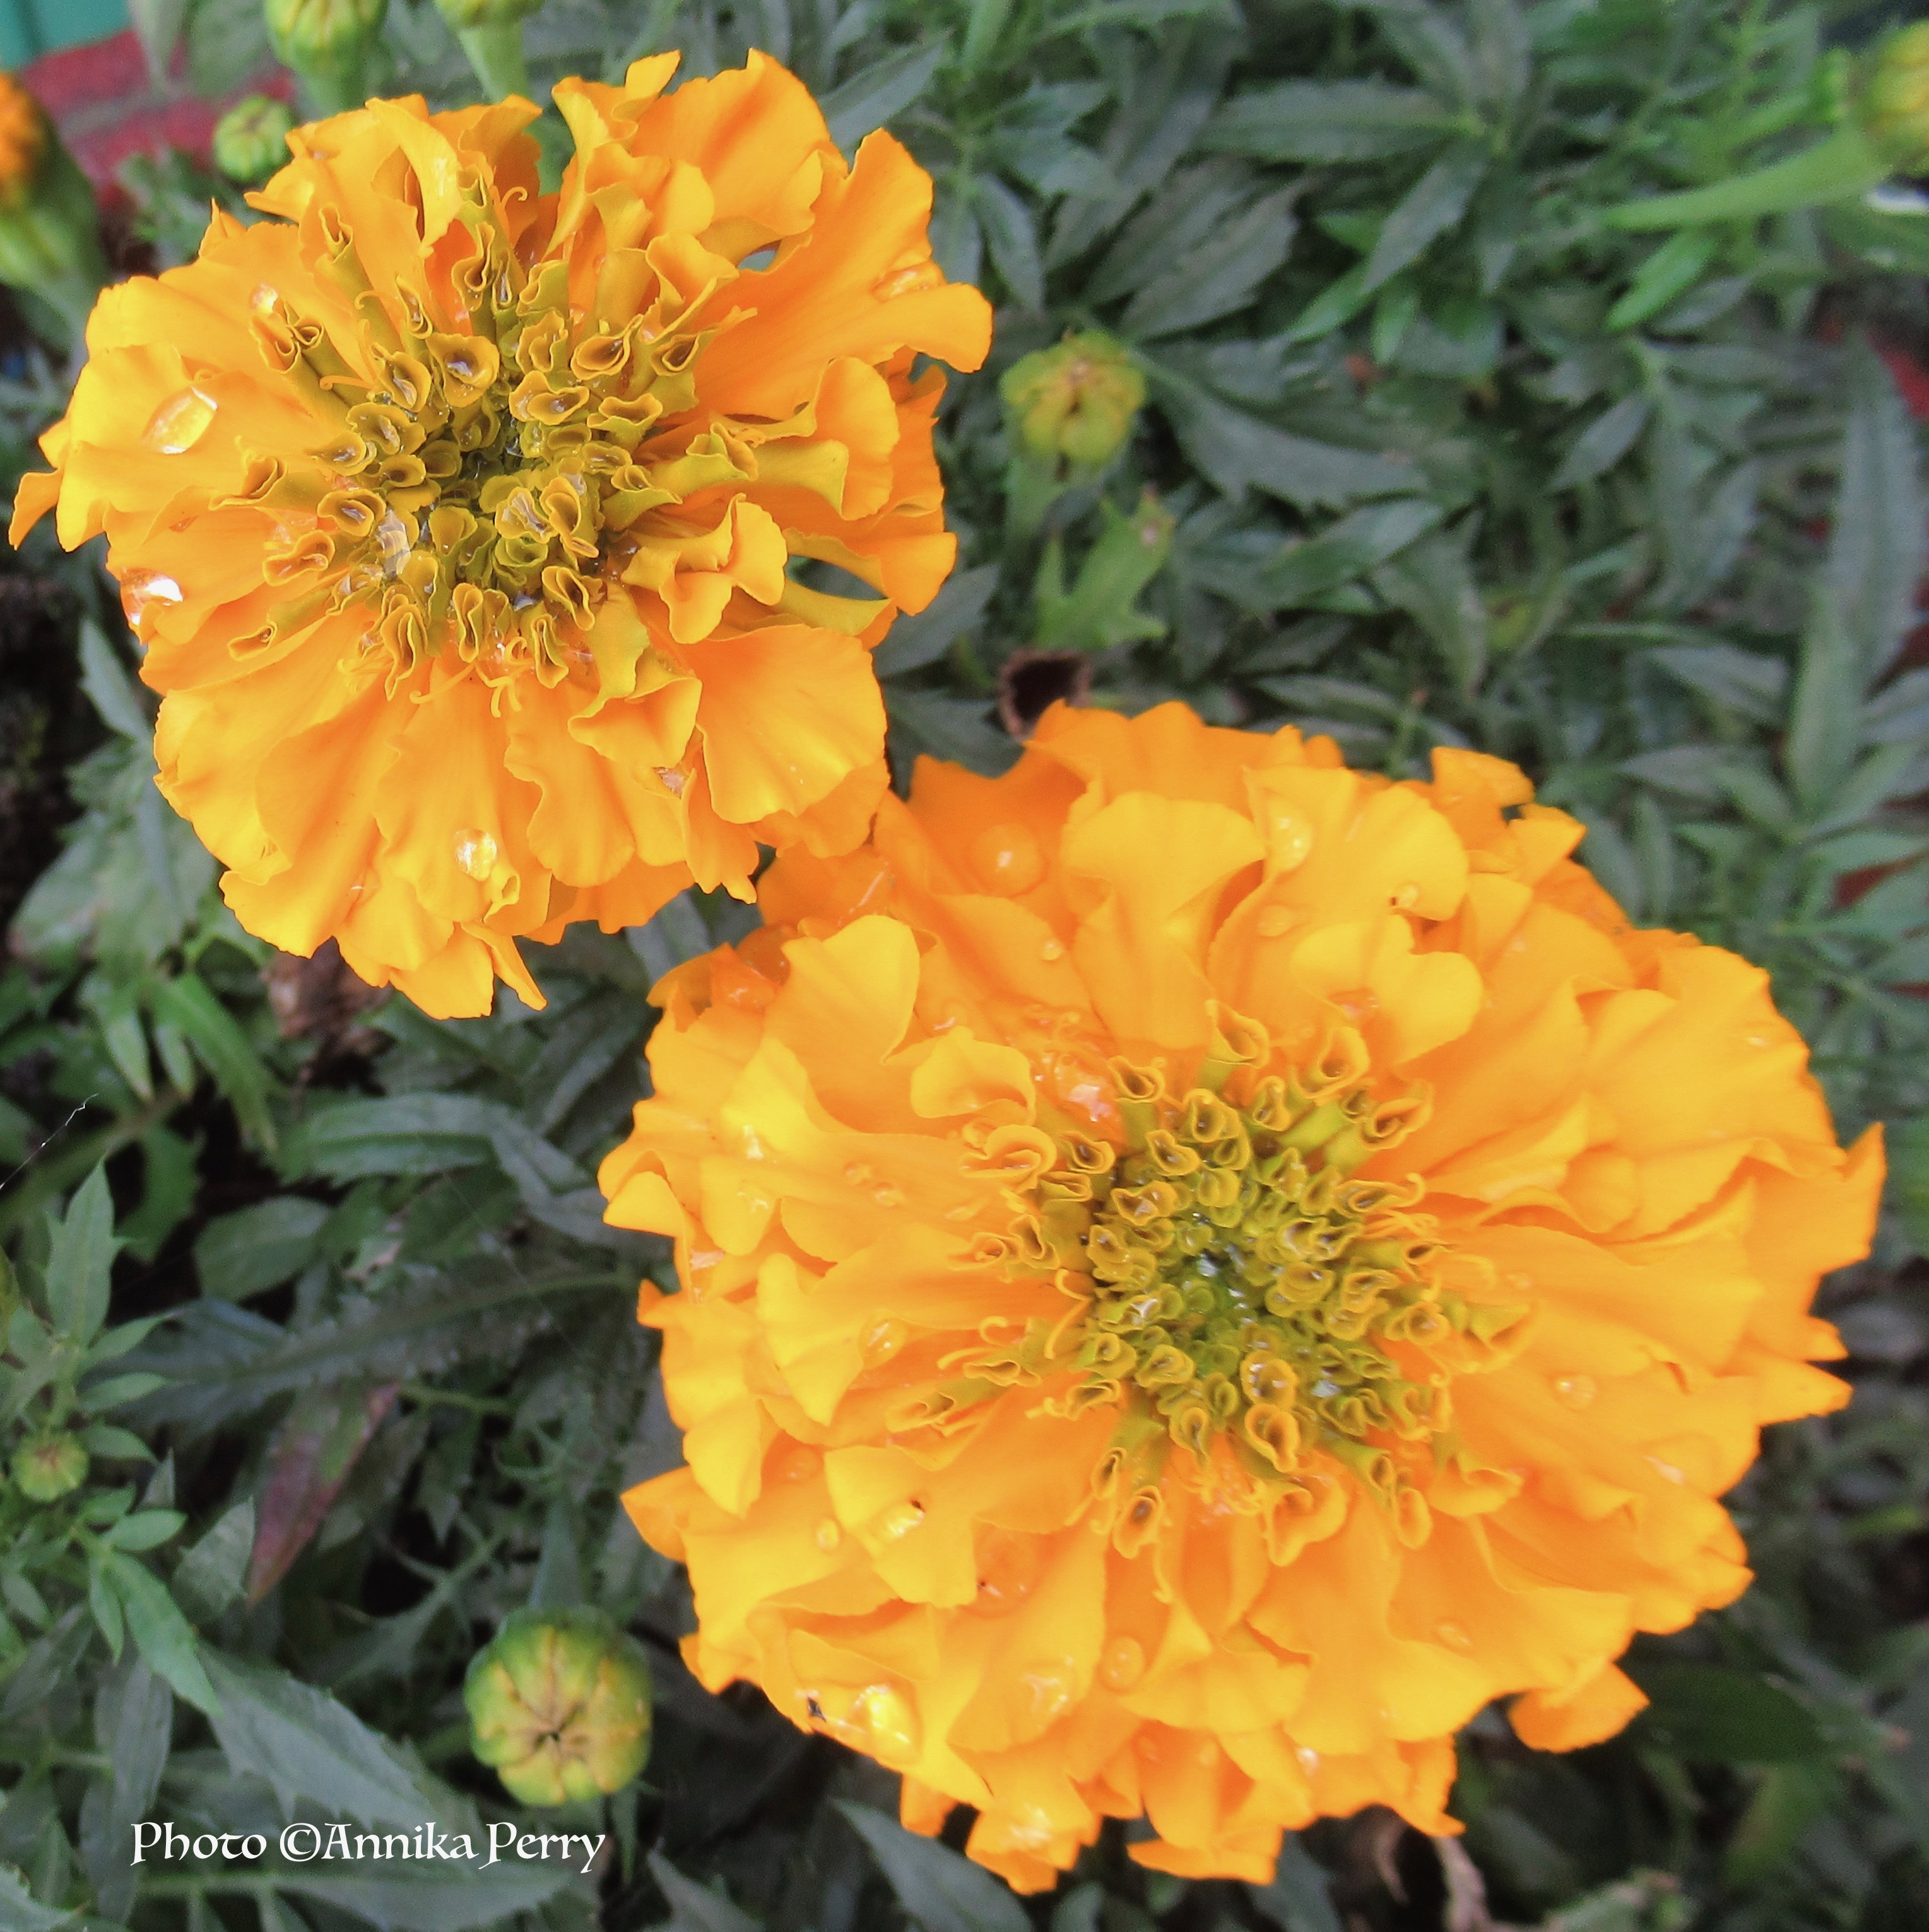 """""""Two marigolds close-up, golden yellow, folds of petals with crystals of dew drops."""""""